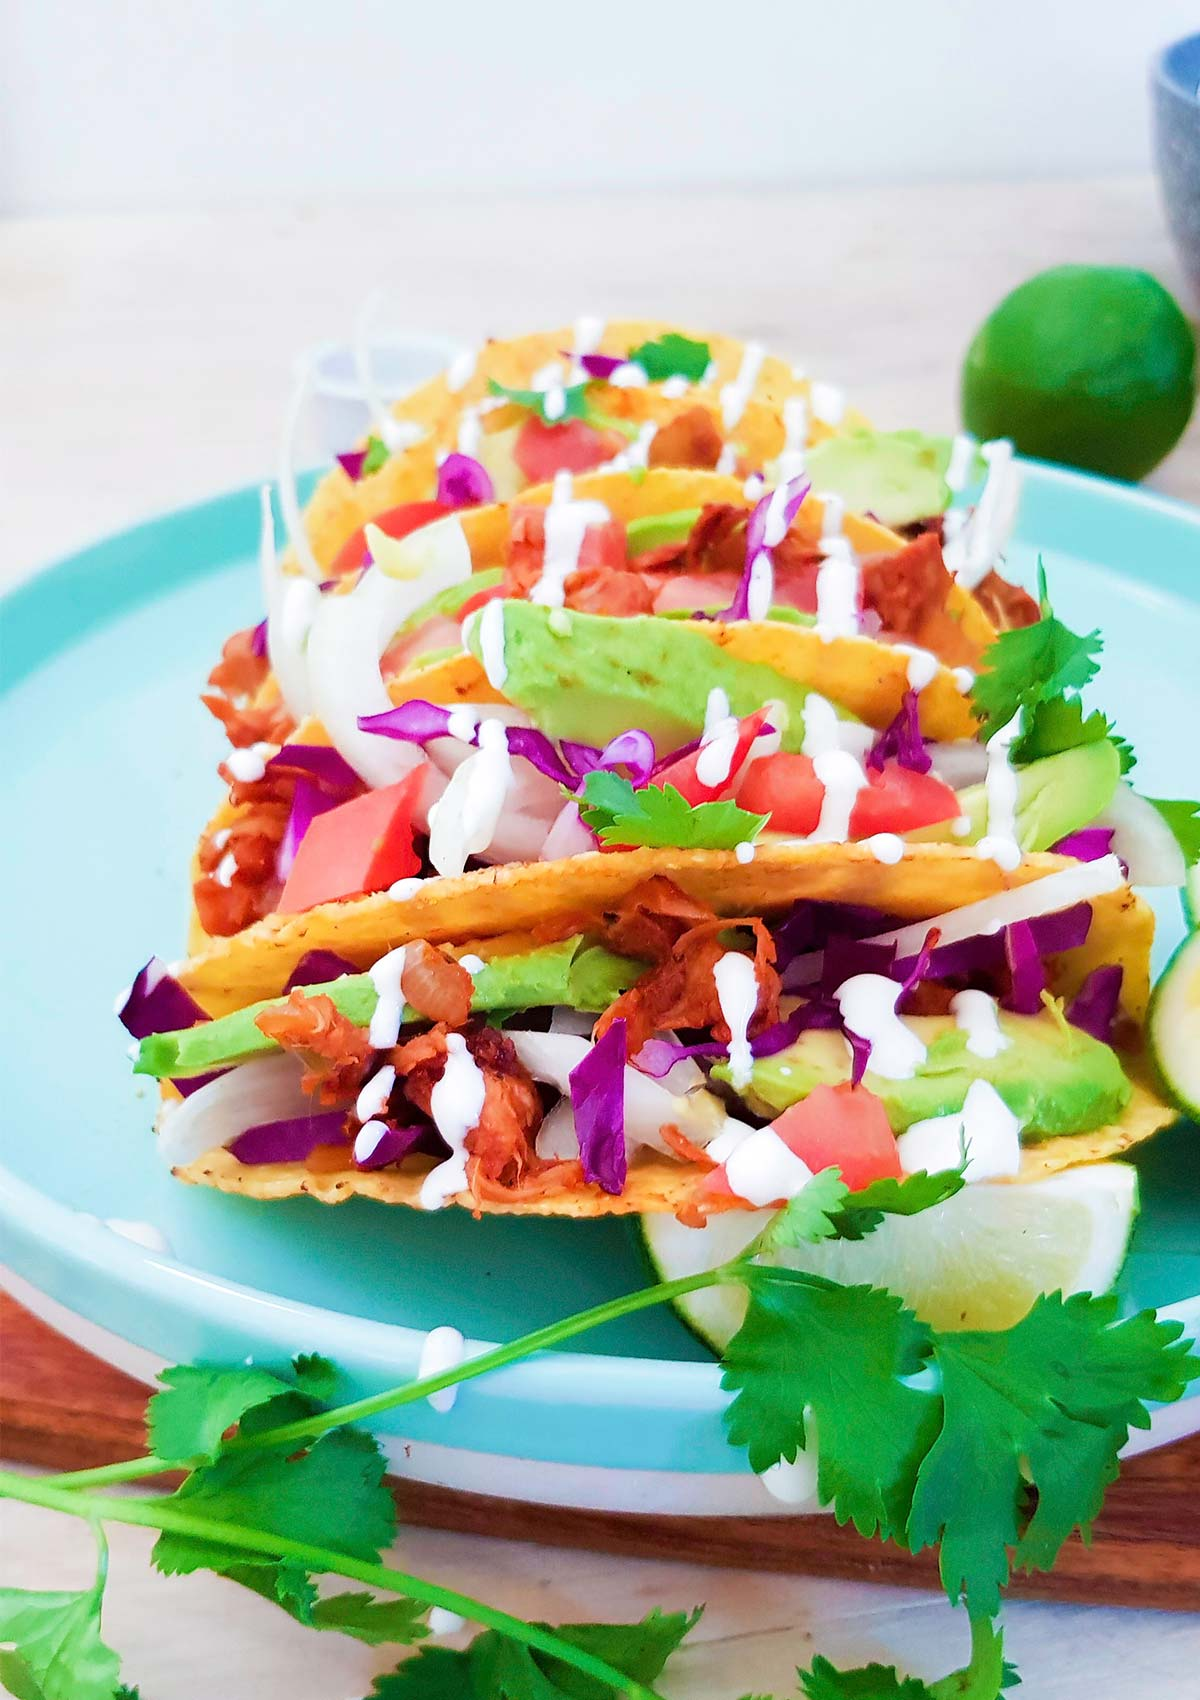 hard shell tacos placed in a plate filled with pulled jackfruit meat